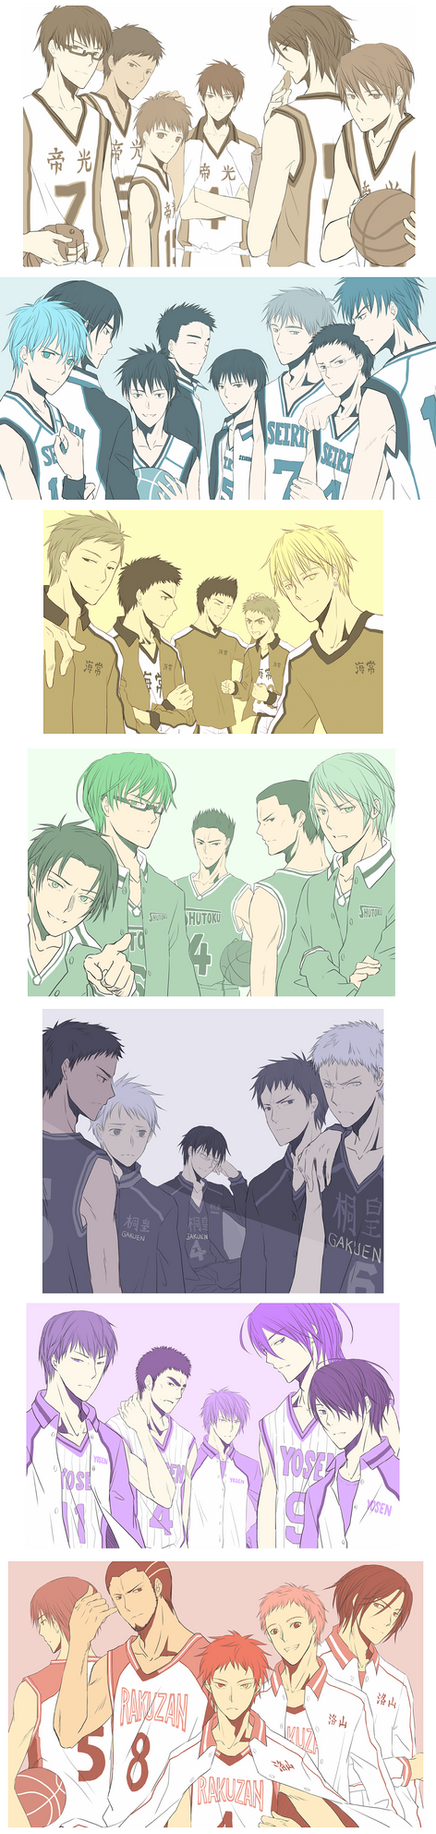 [تصویر:  kuroko_no_basuke___as_a_team_by_annciel-d5pob1o.png]